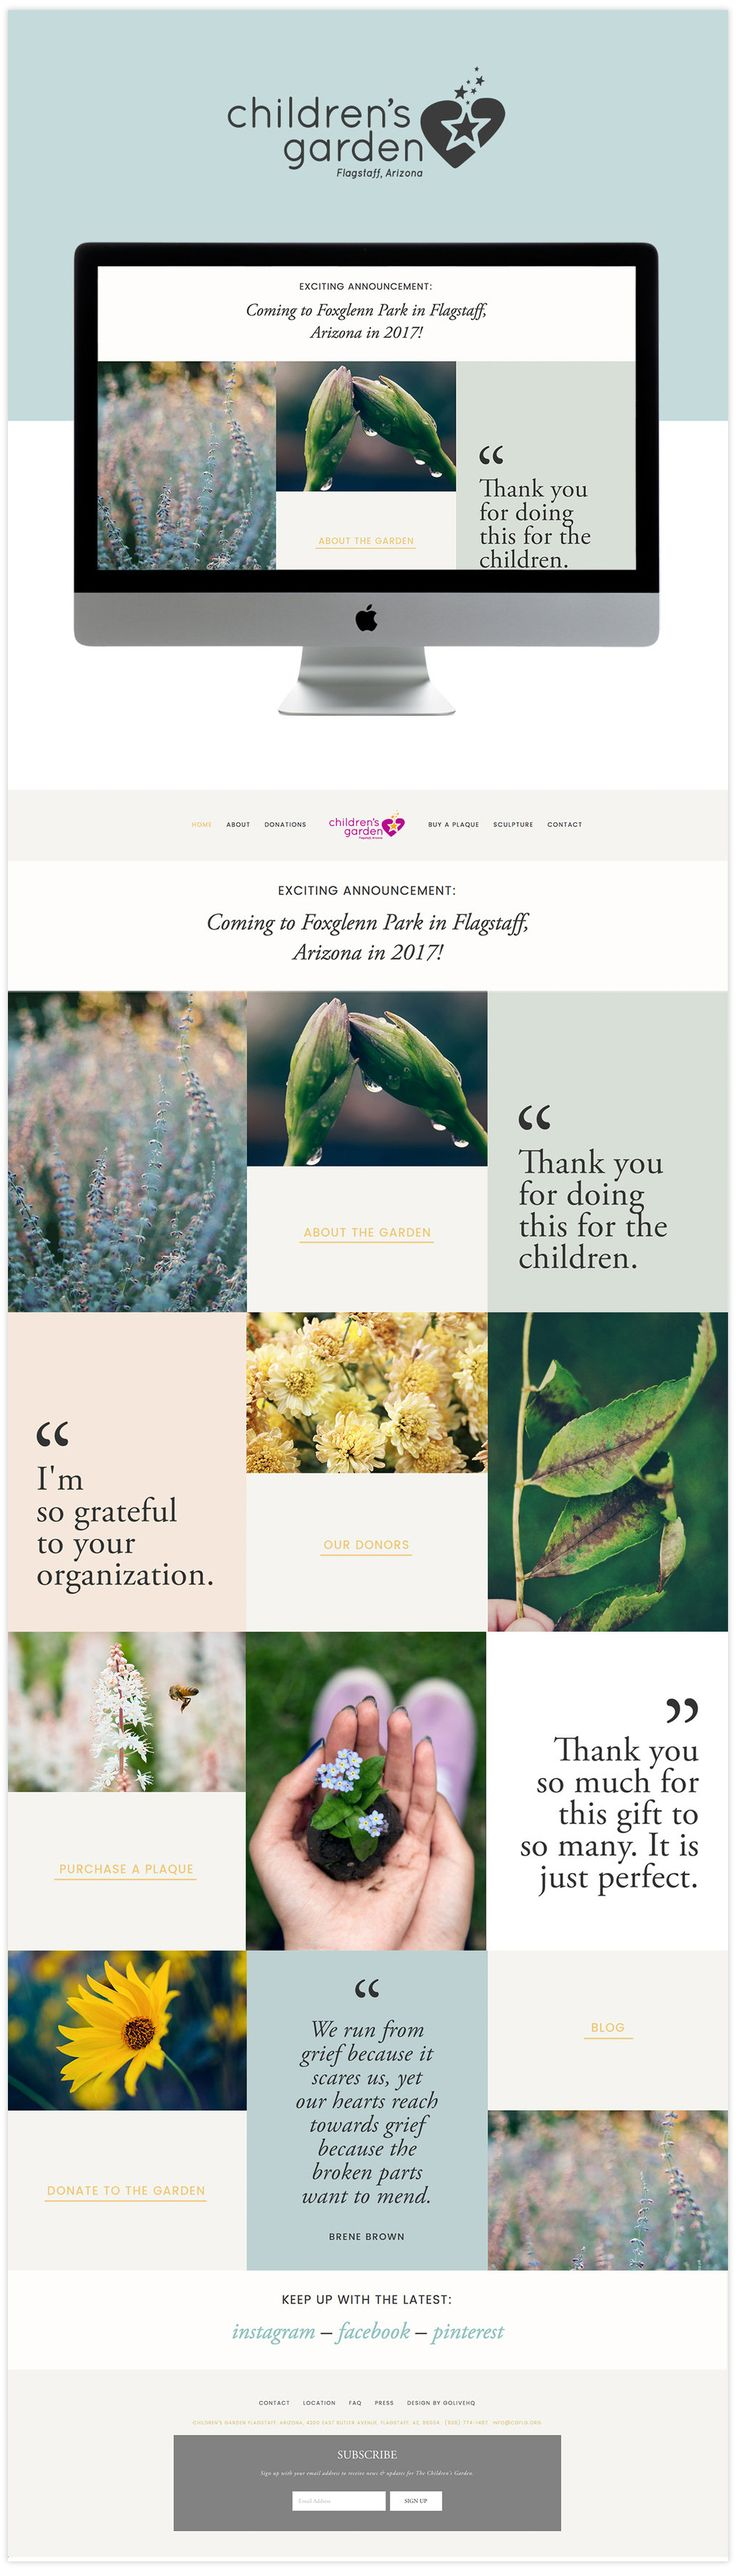 Soft,+Inviting,+Peaceful+Squarespace+website+design+|+designed+by-+golivehq.co.jpeg